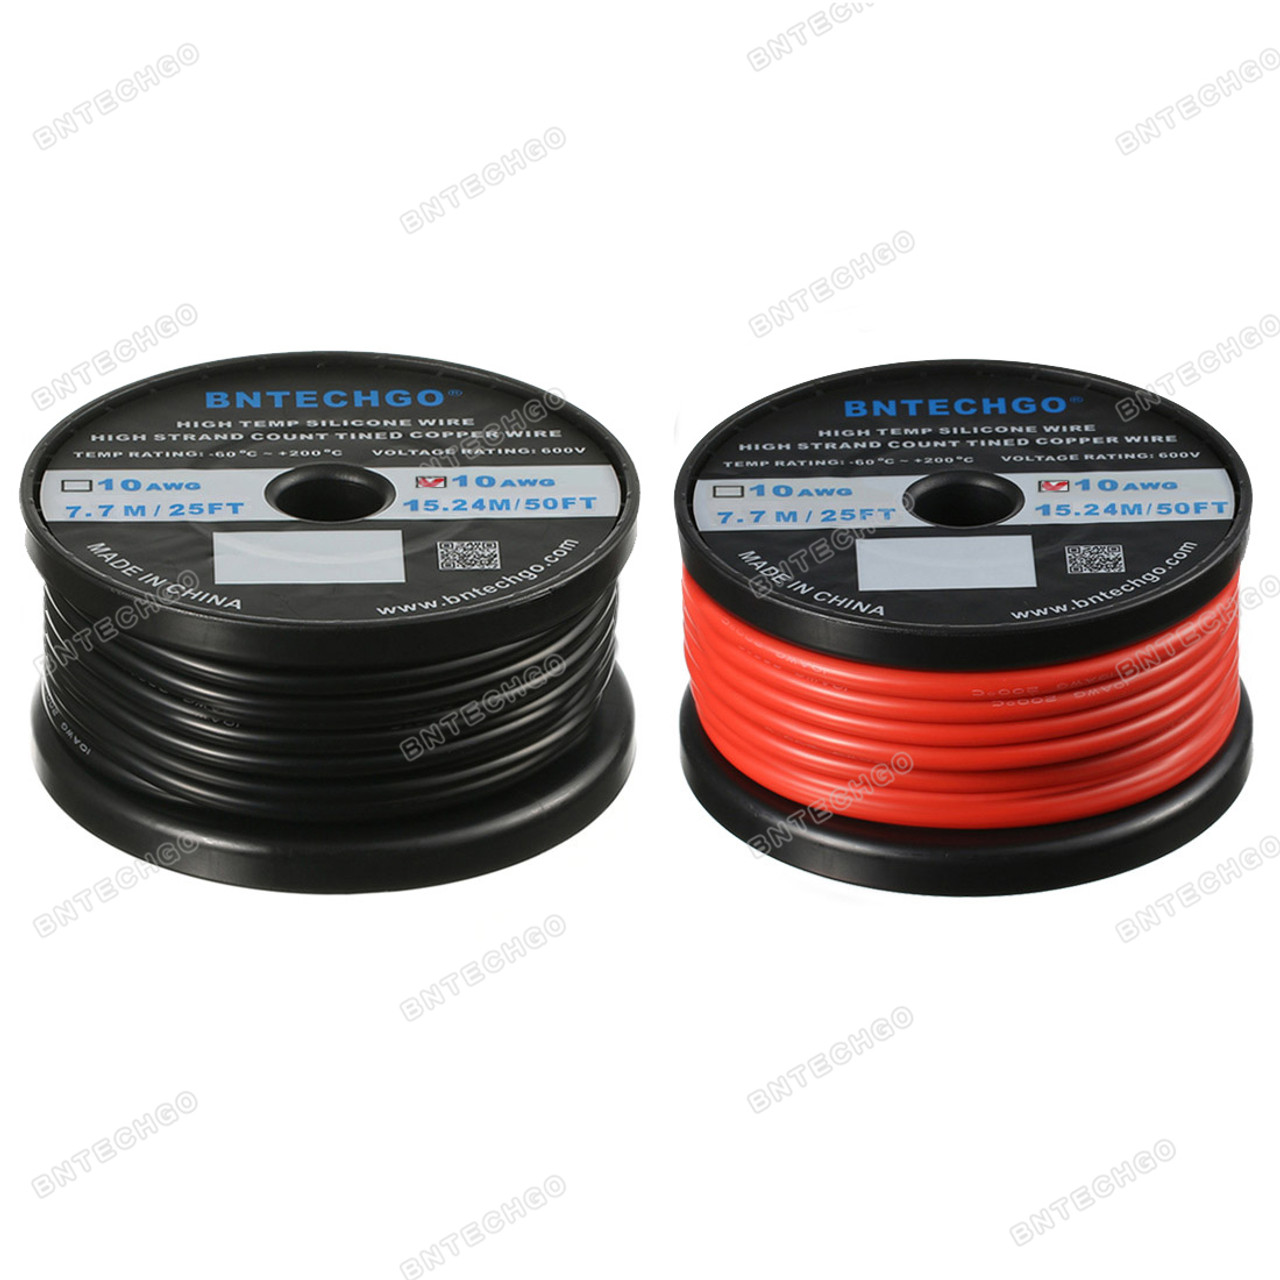 Details about  /BNTECHGO 14 Gauge Silicone Wire 10 ft red and 10 ft Black Flexible 14 AWG Copper